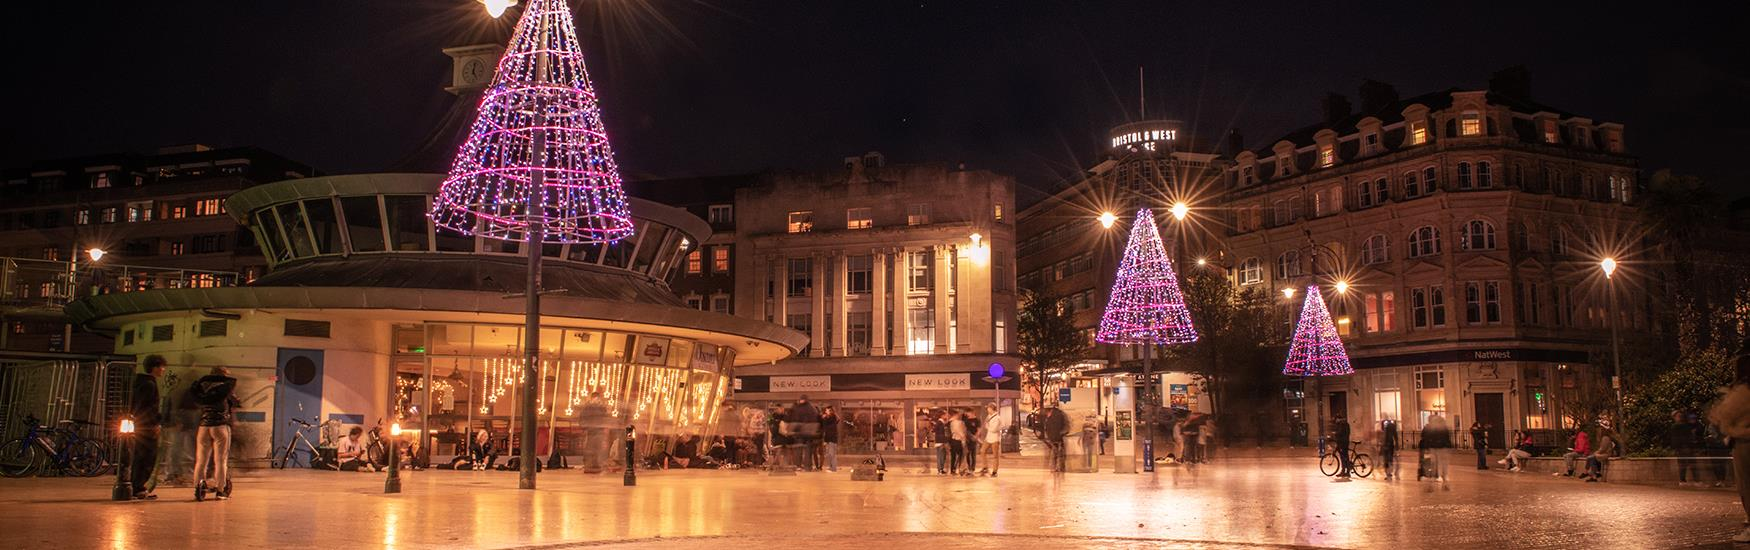 Town Square decorated with Christmas lights and festive decorations with shops in the background